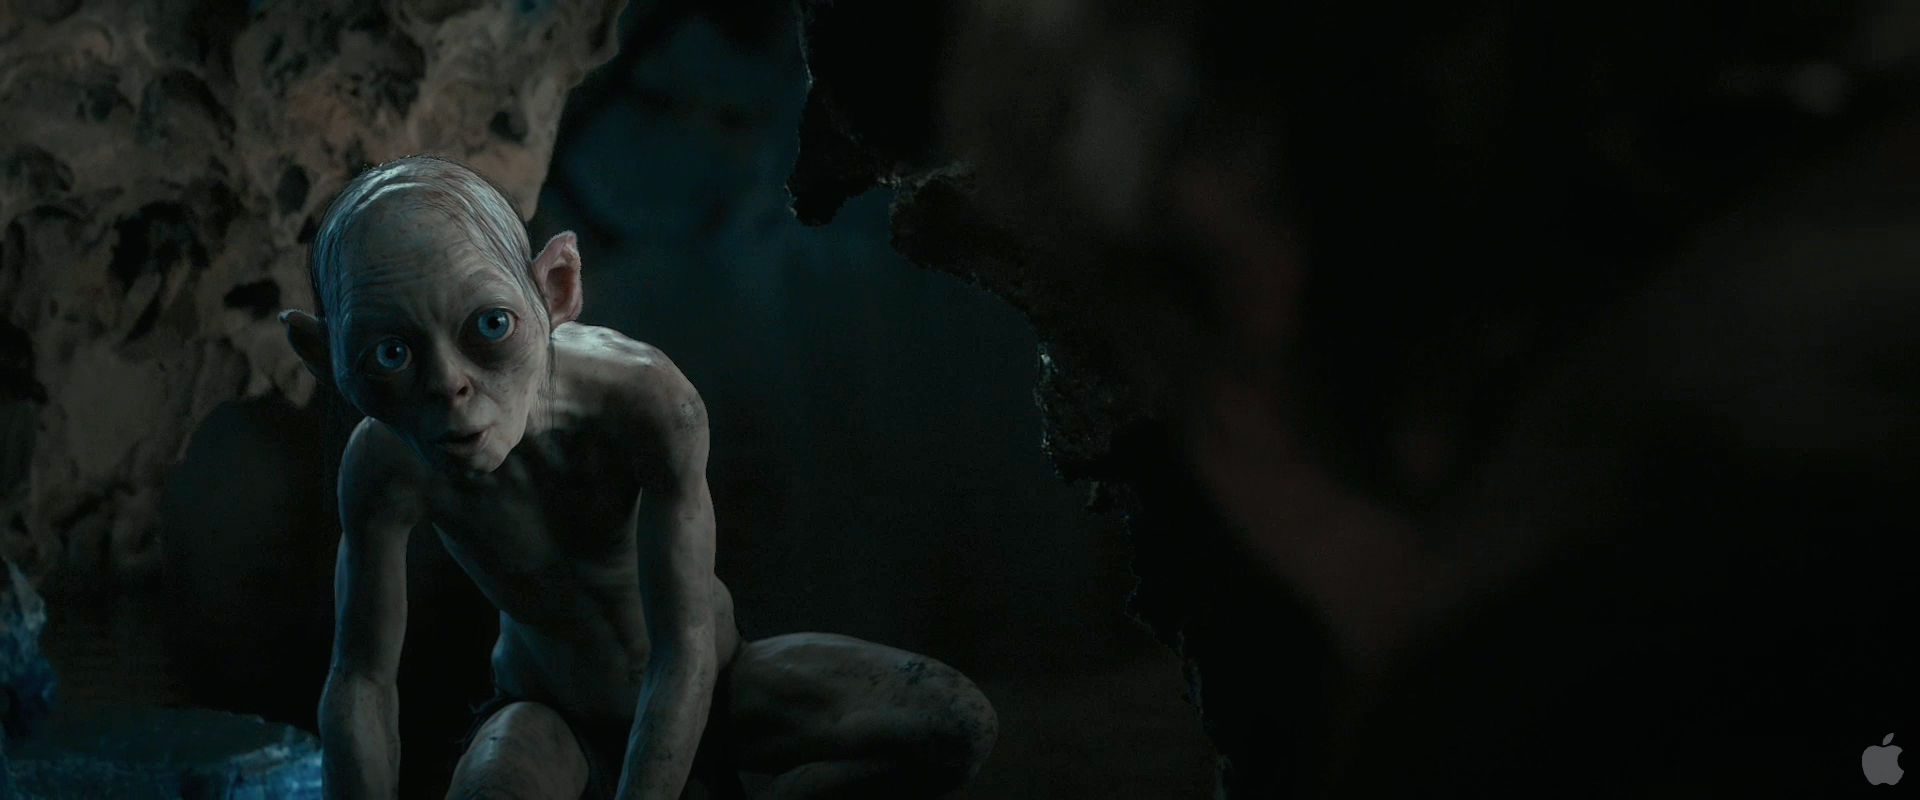 'The Hobbit: An Unexpected Journey' – Trailer 2 – Frame by Frame Analysis | Hobbit Movie News and Rumors | TheOneRing.net™ - Part 6